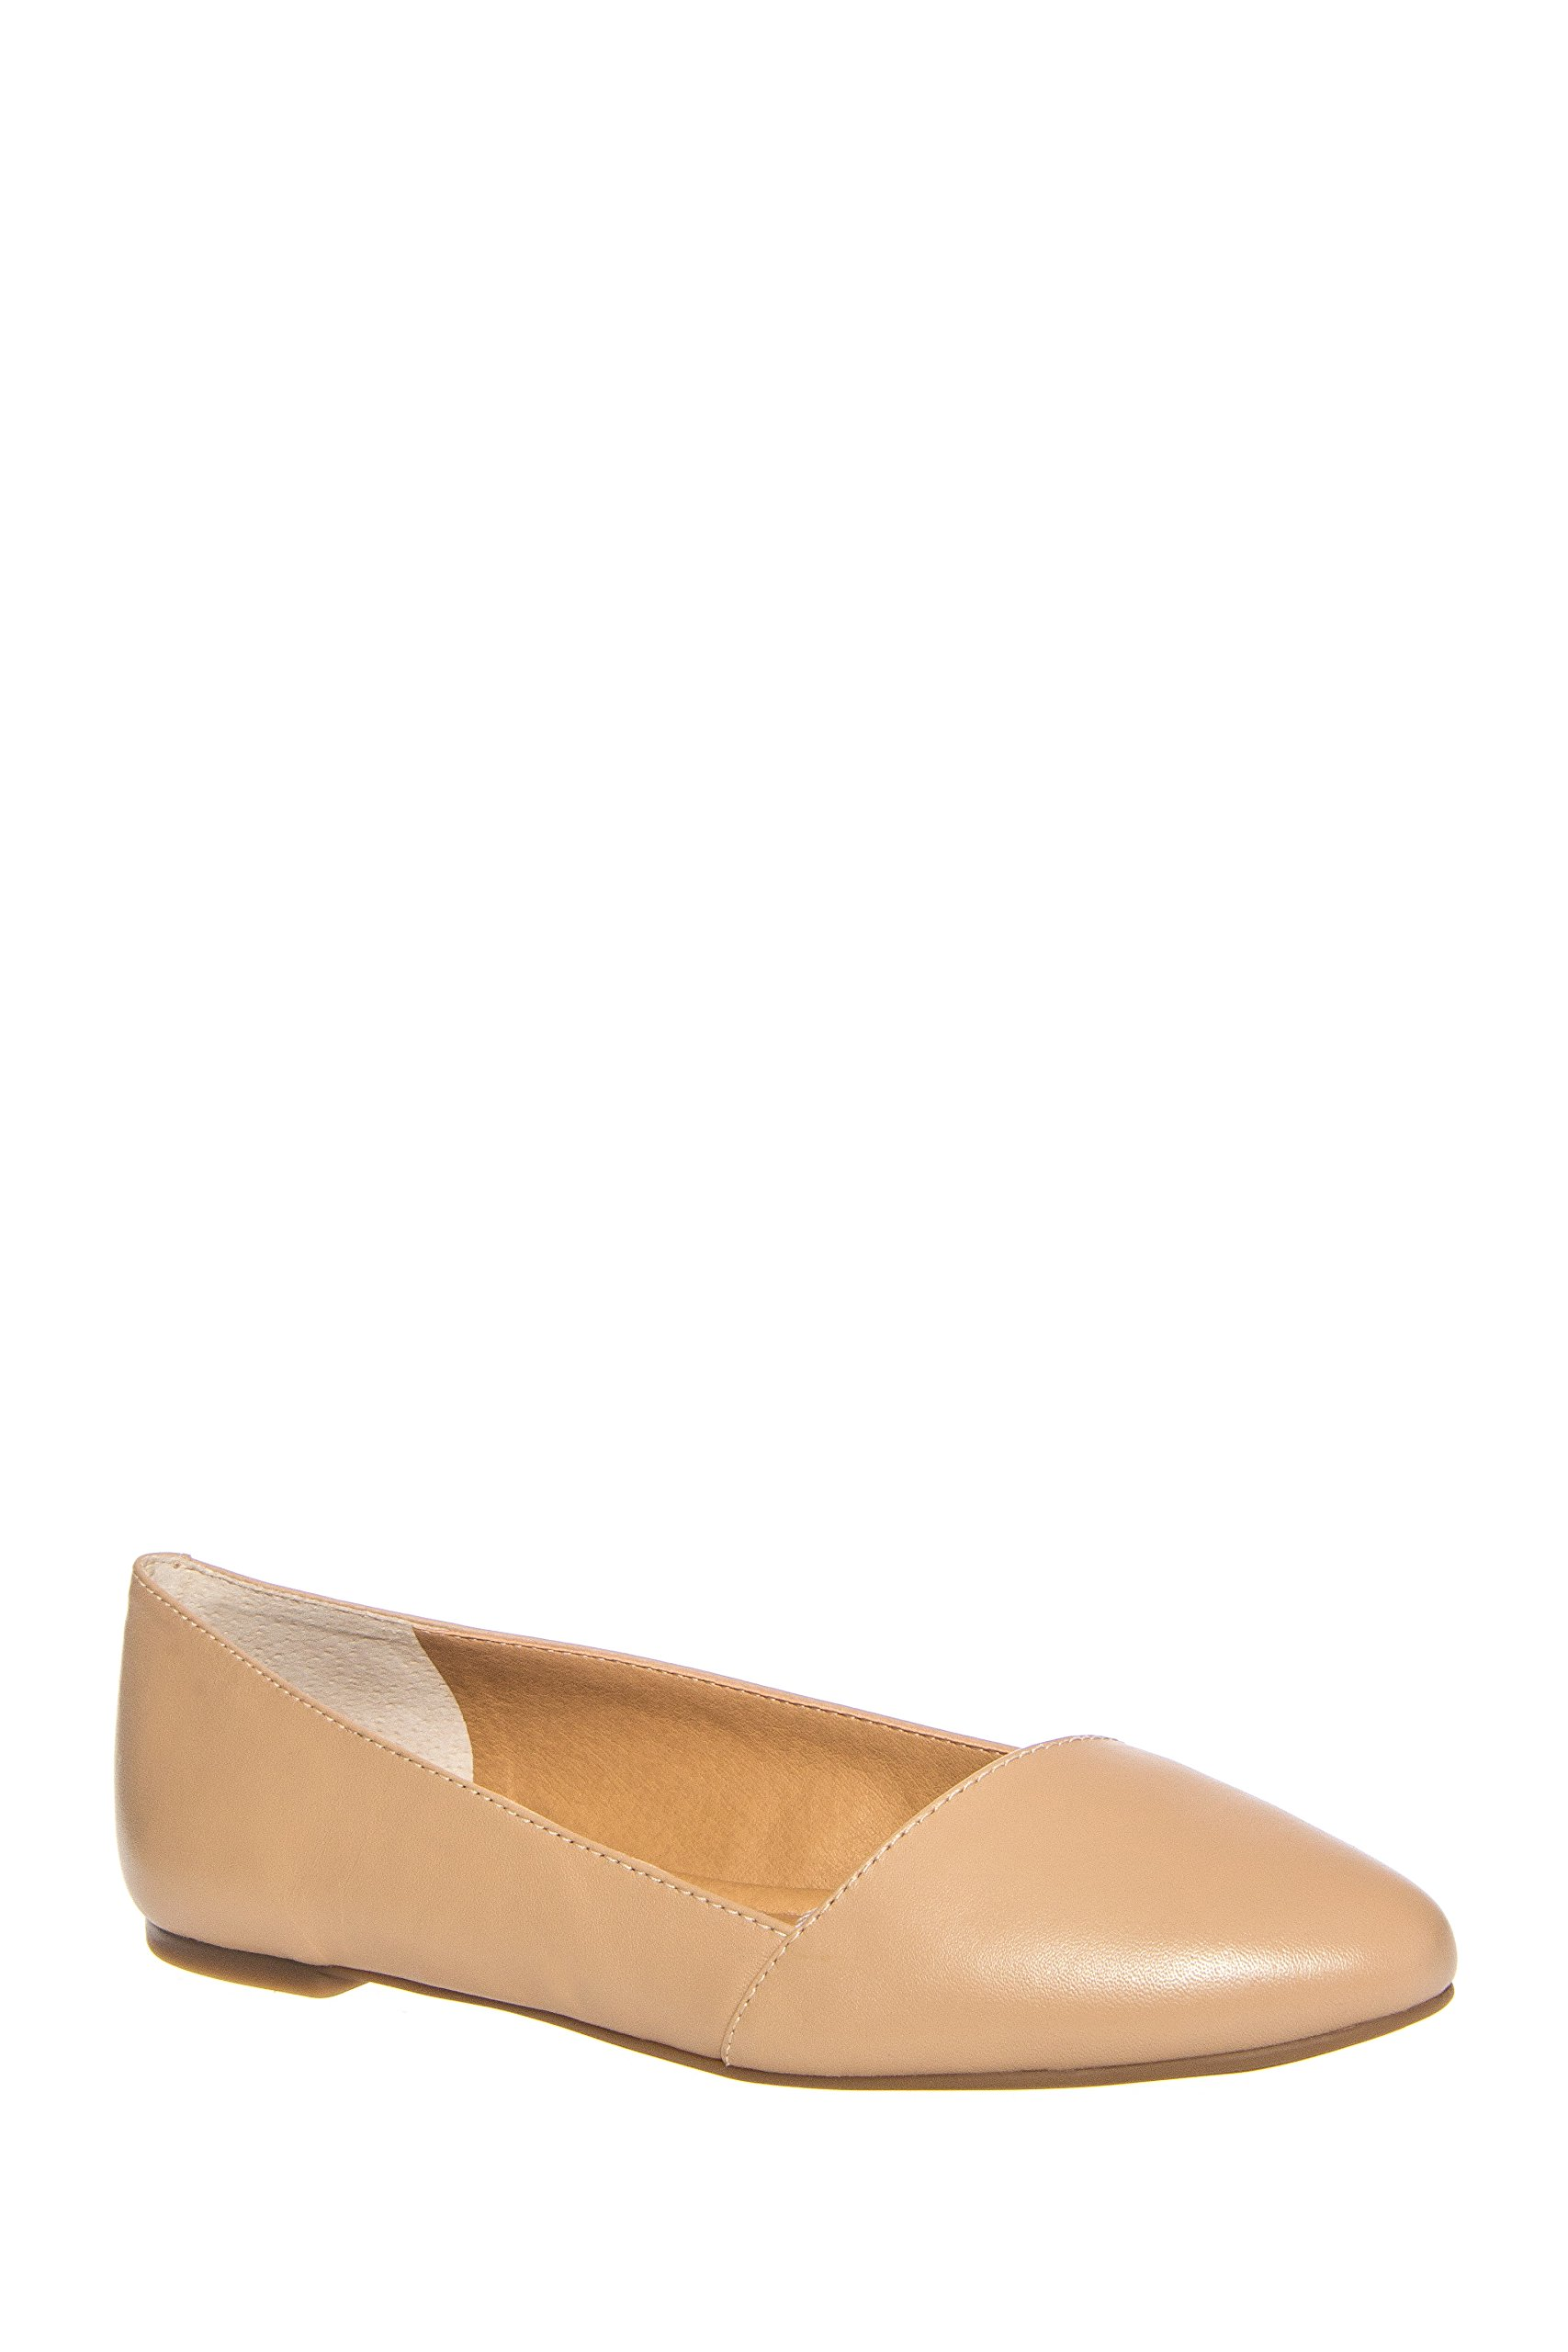 Lucky Brand Women's Archh Flat,Nude Leather,US 7 M